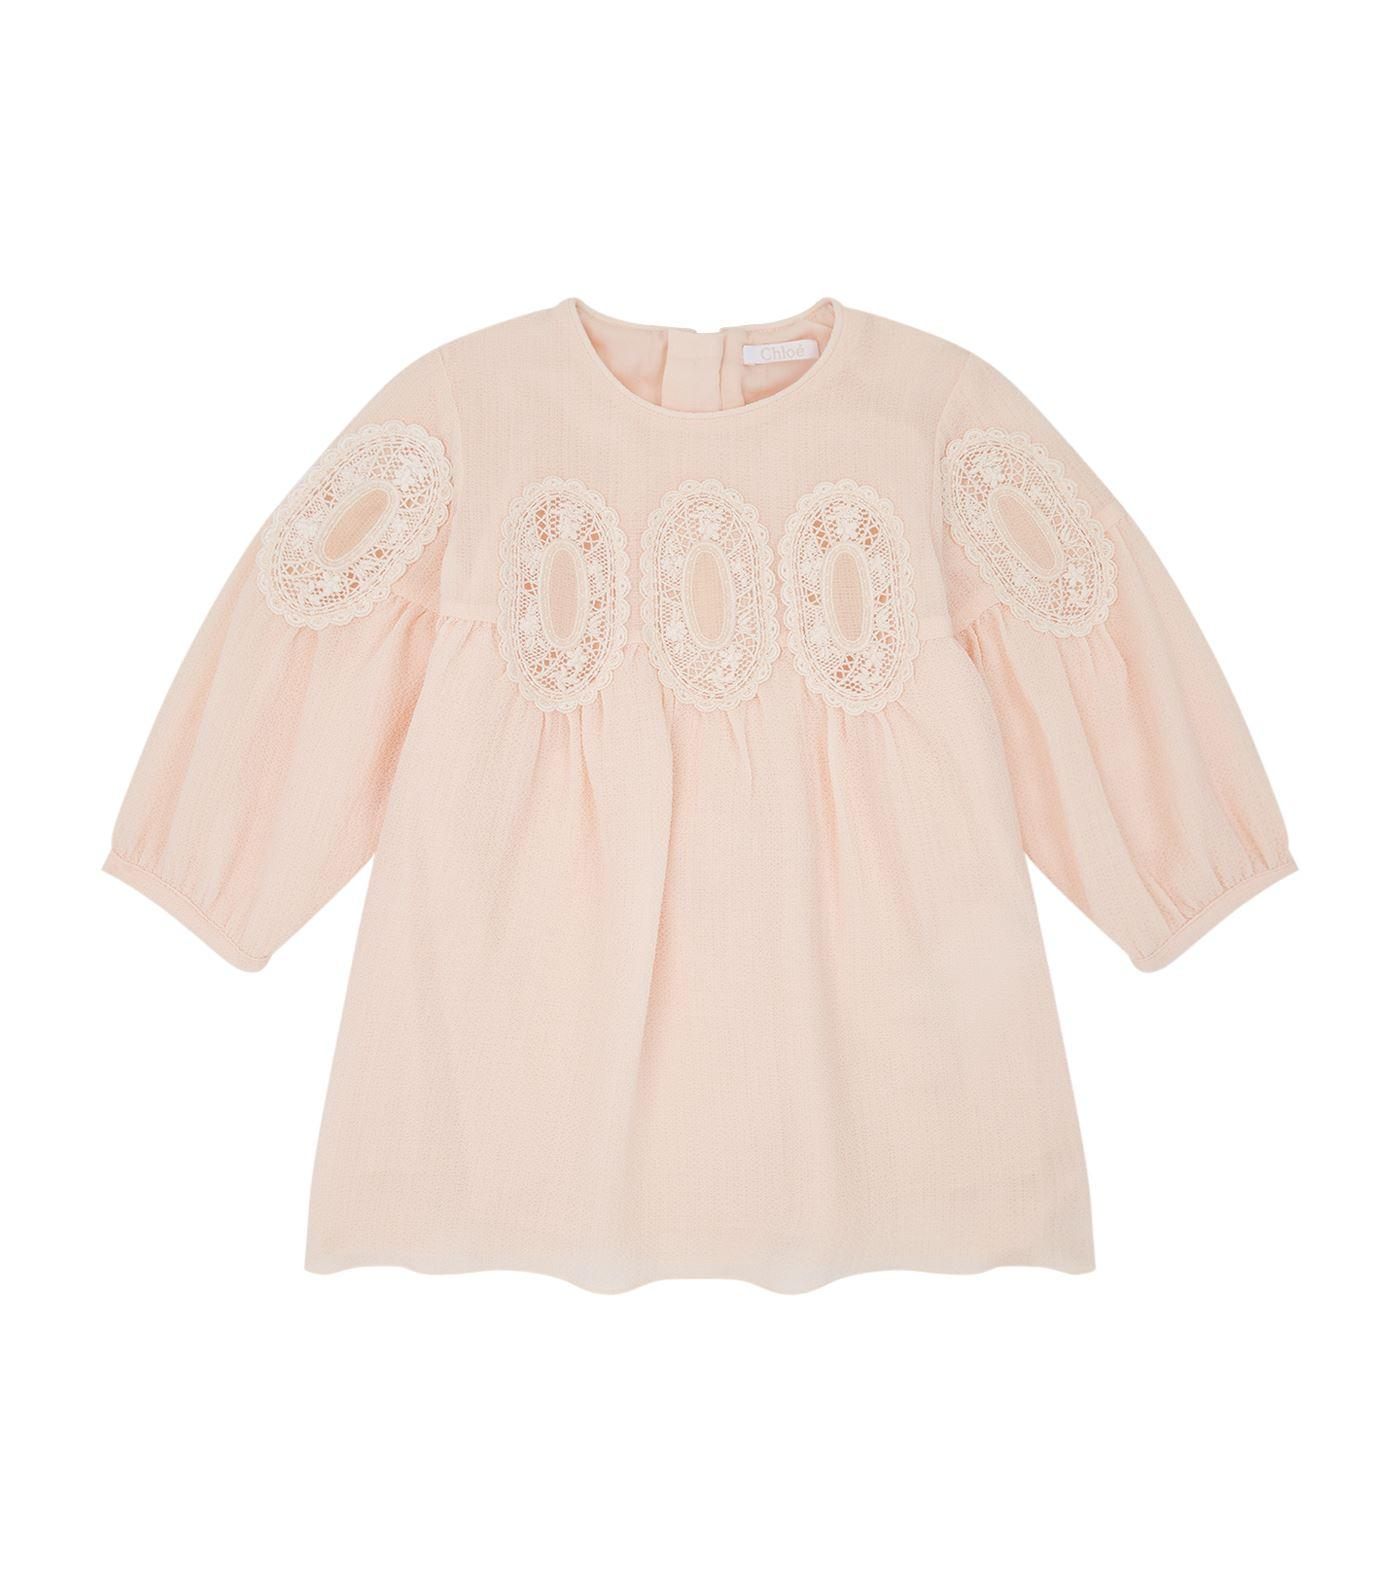 ChloÉ Lace Medalliondress In Pink